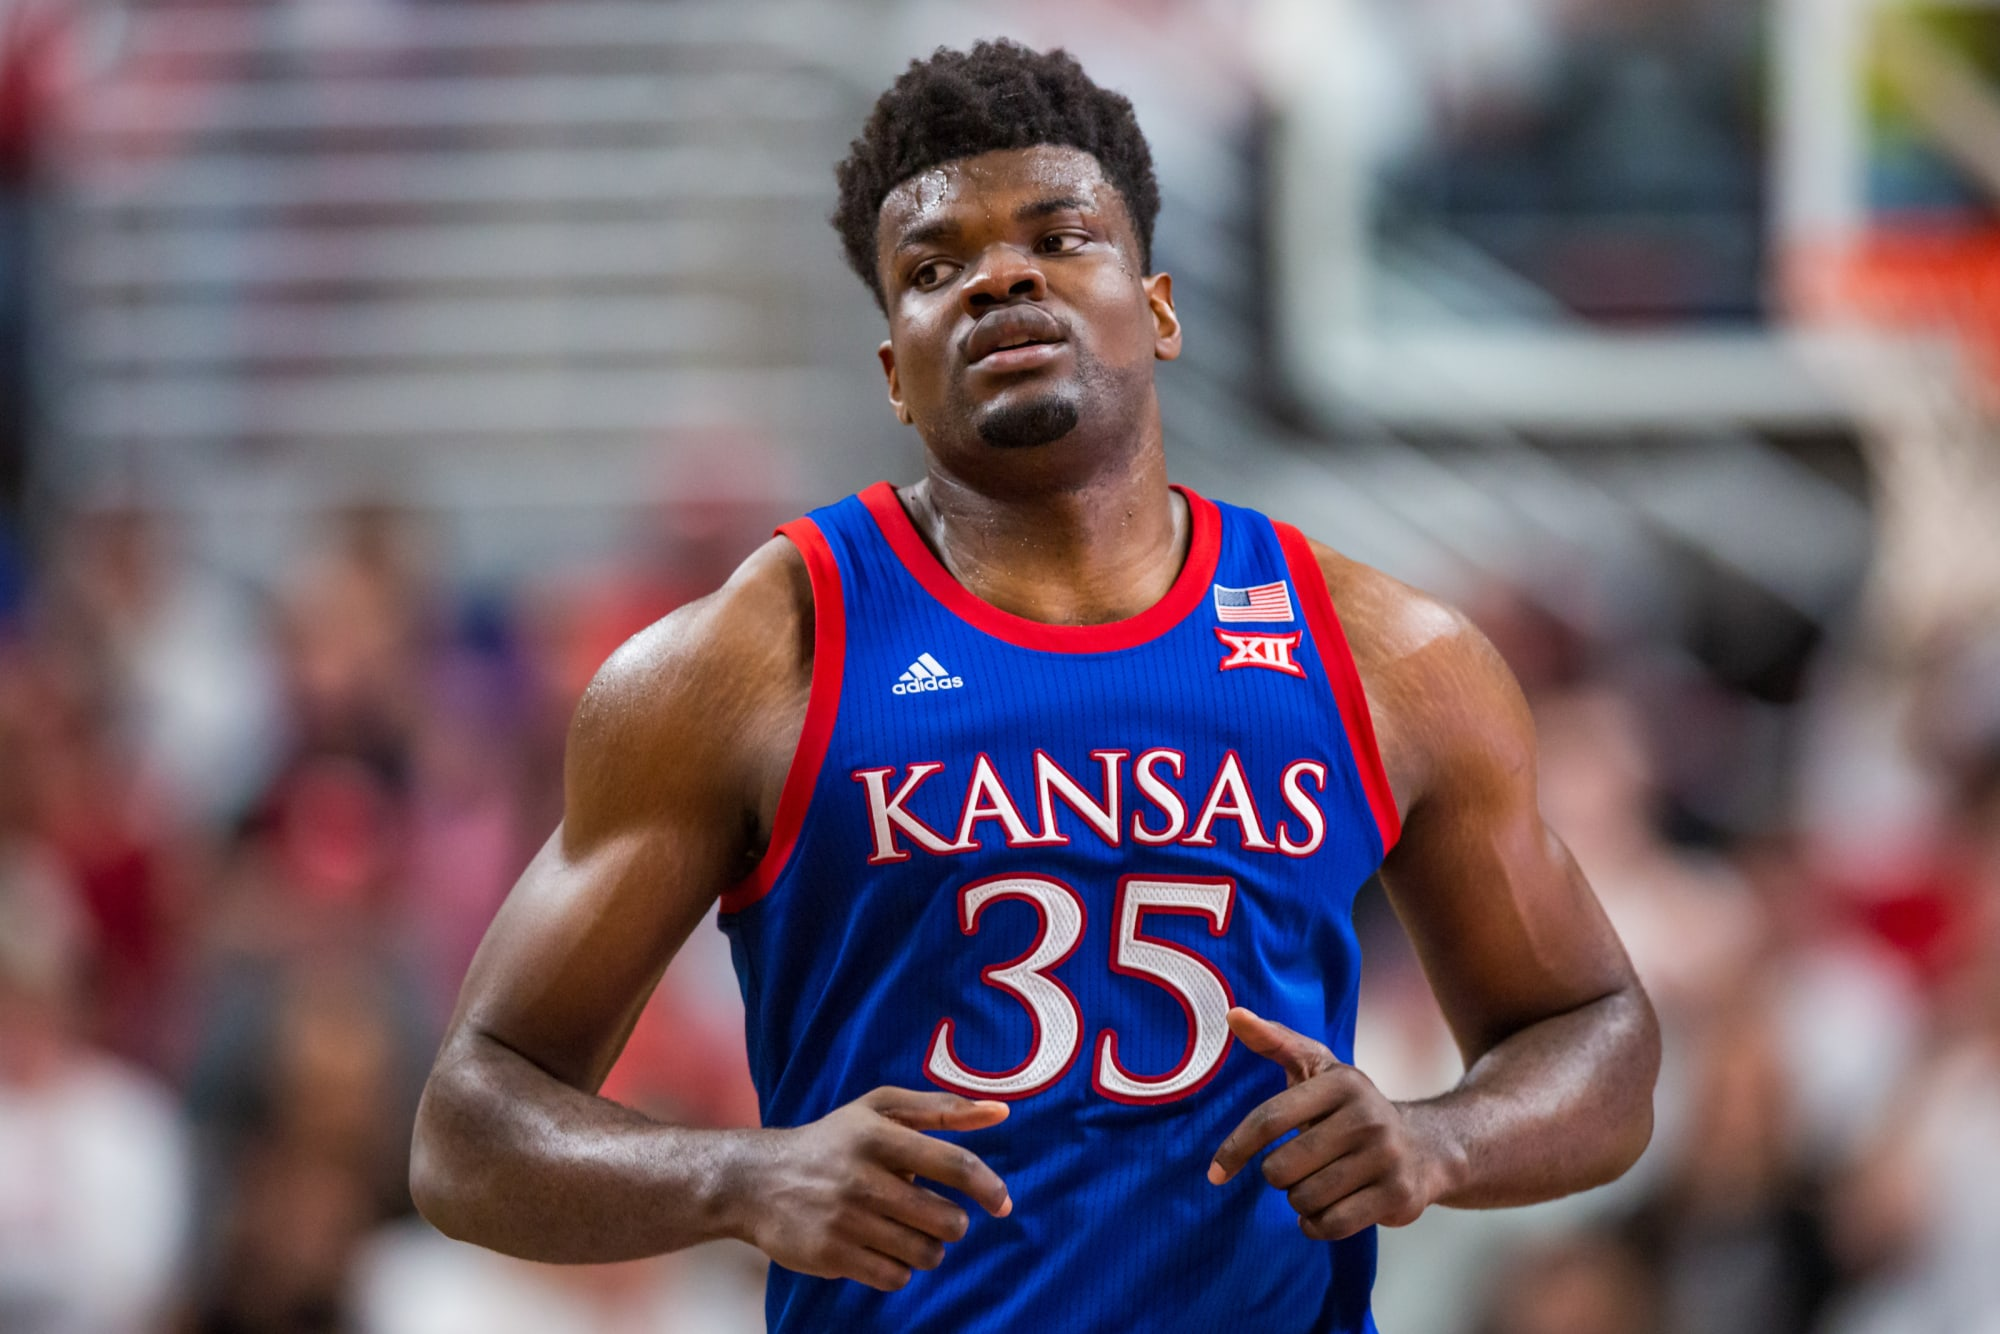 Charlotte Hornets: Udoka Azubuike could be worth a look in the second round